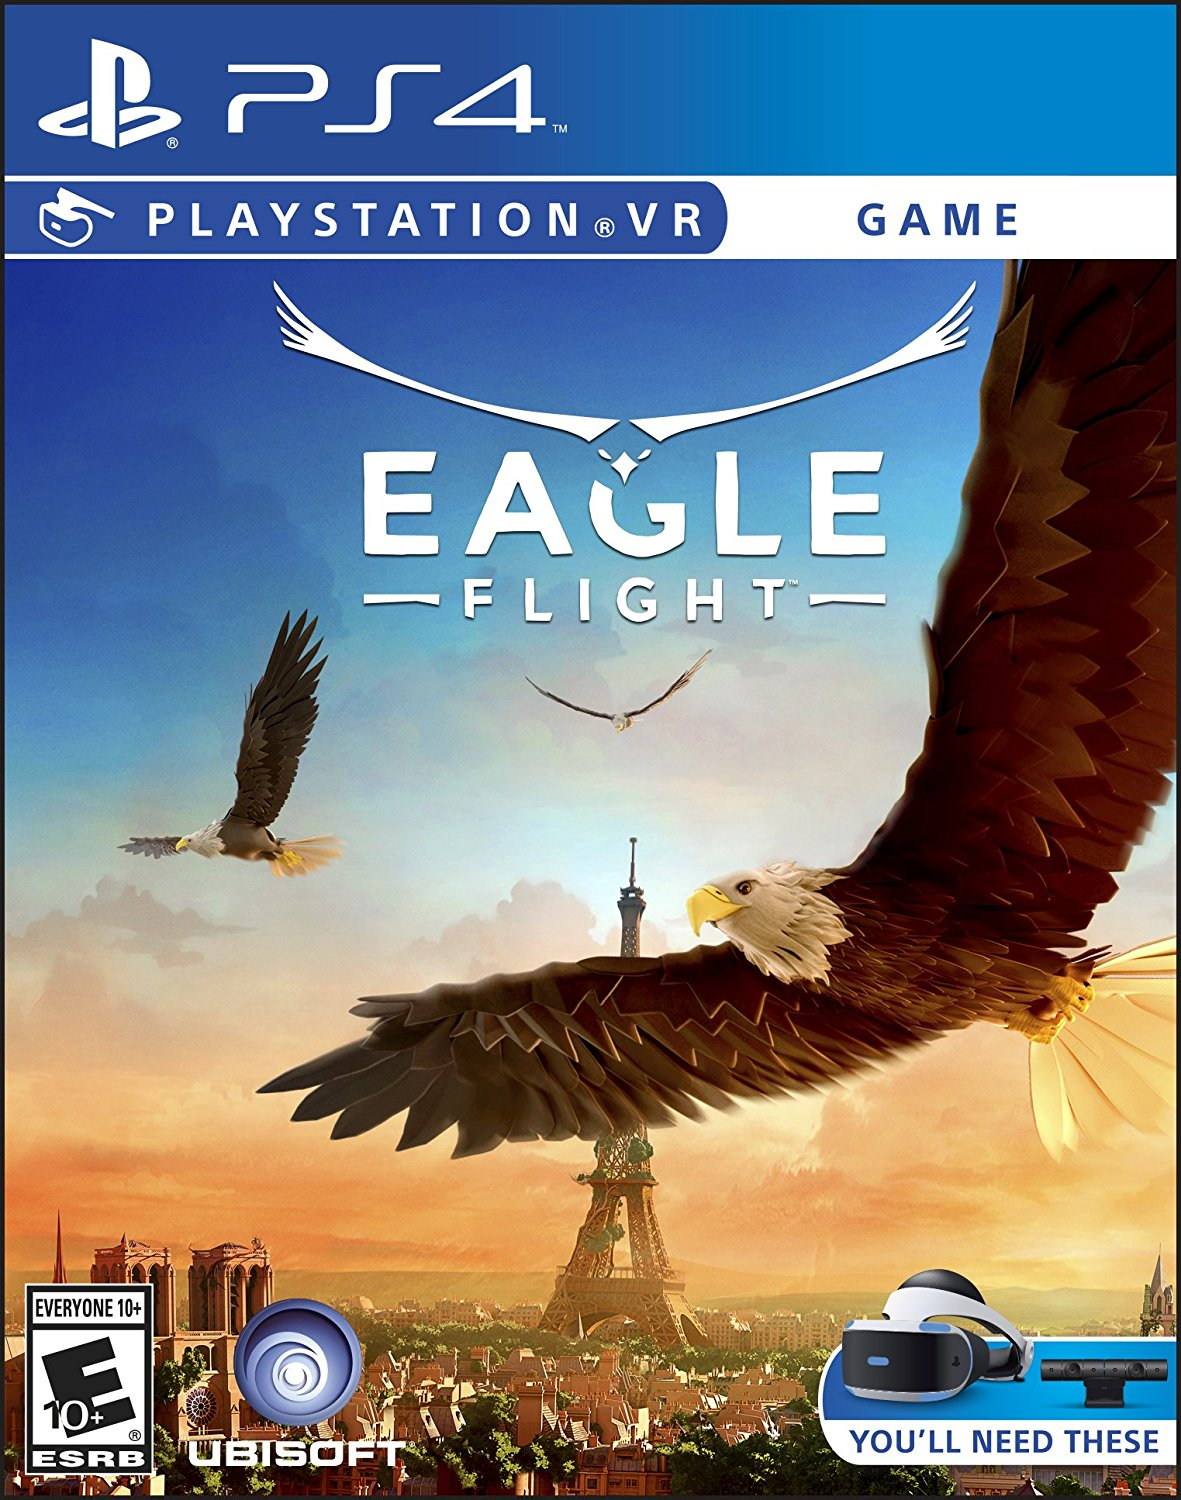 PS4 PSVR Eagle Flight